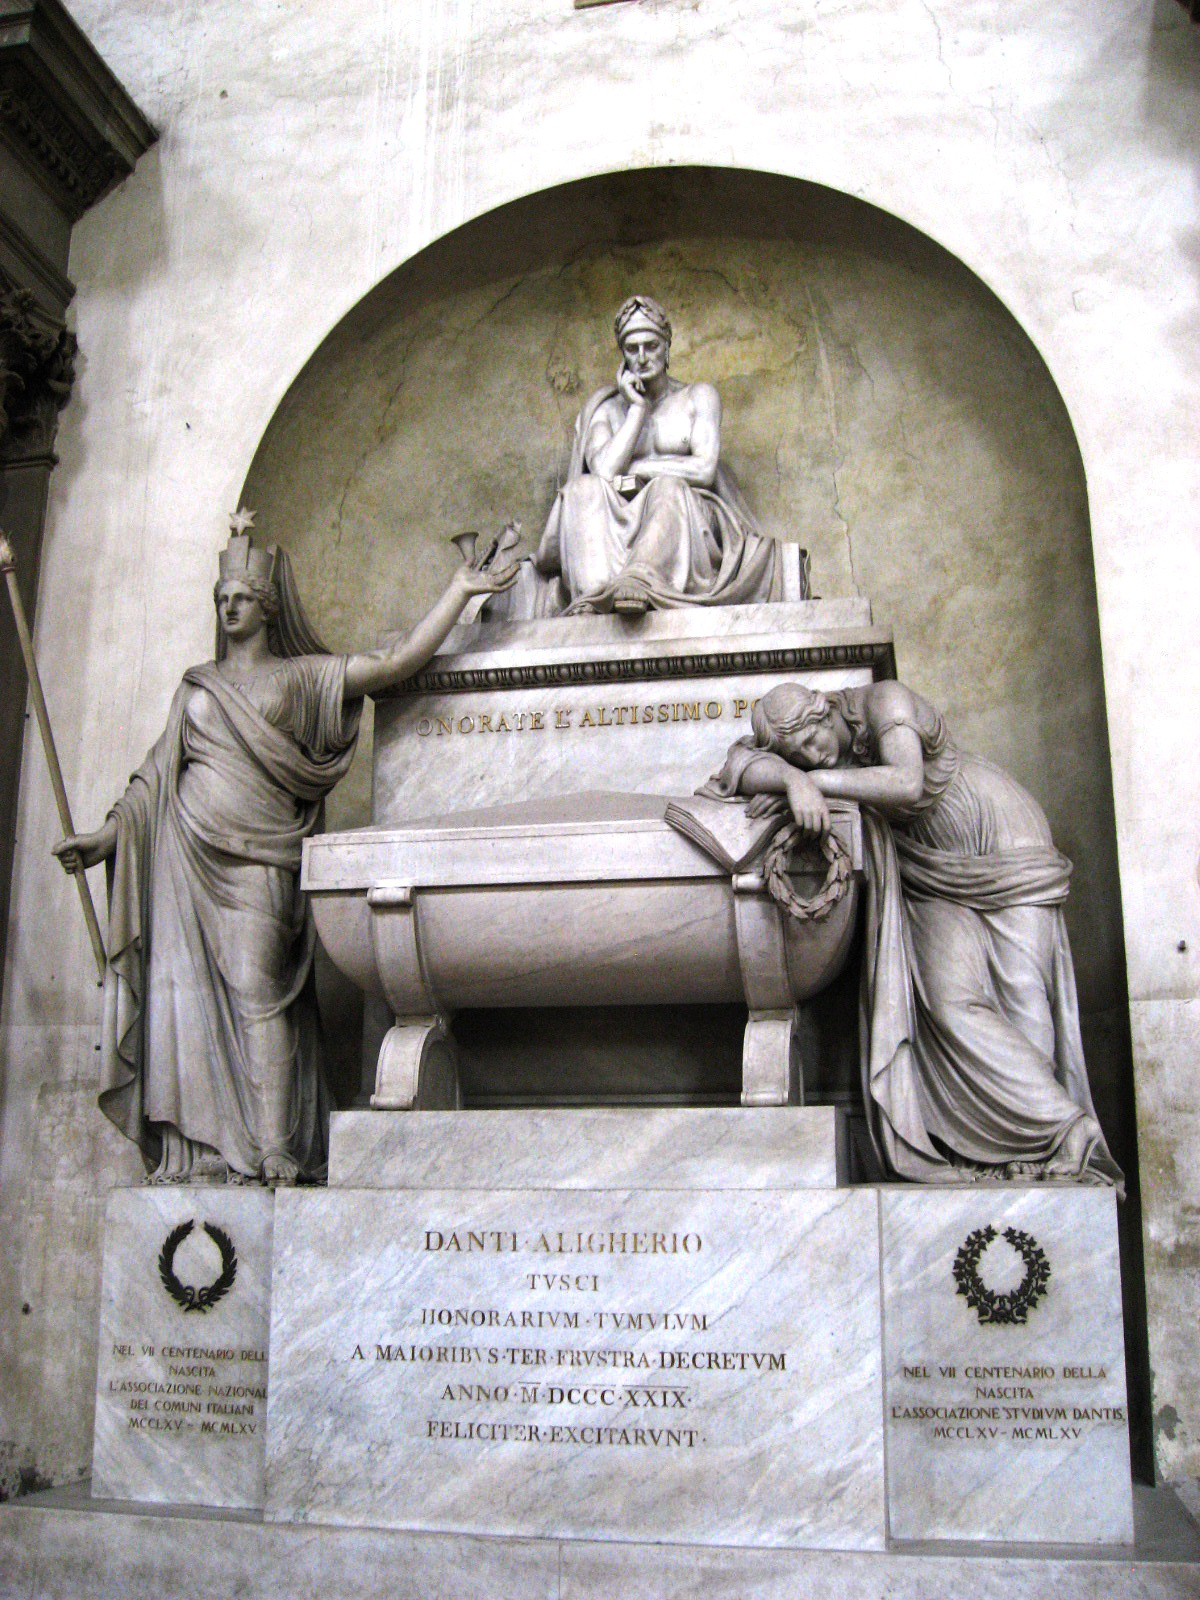 Cenotaph of Dante Alighieri in the Basilica of Santa Croce in Florence. Photo taken on May 1, 2008.